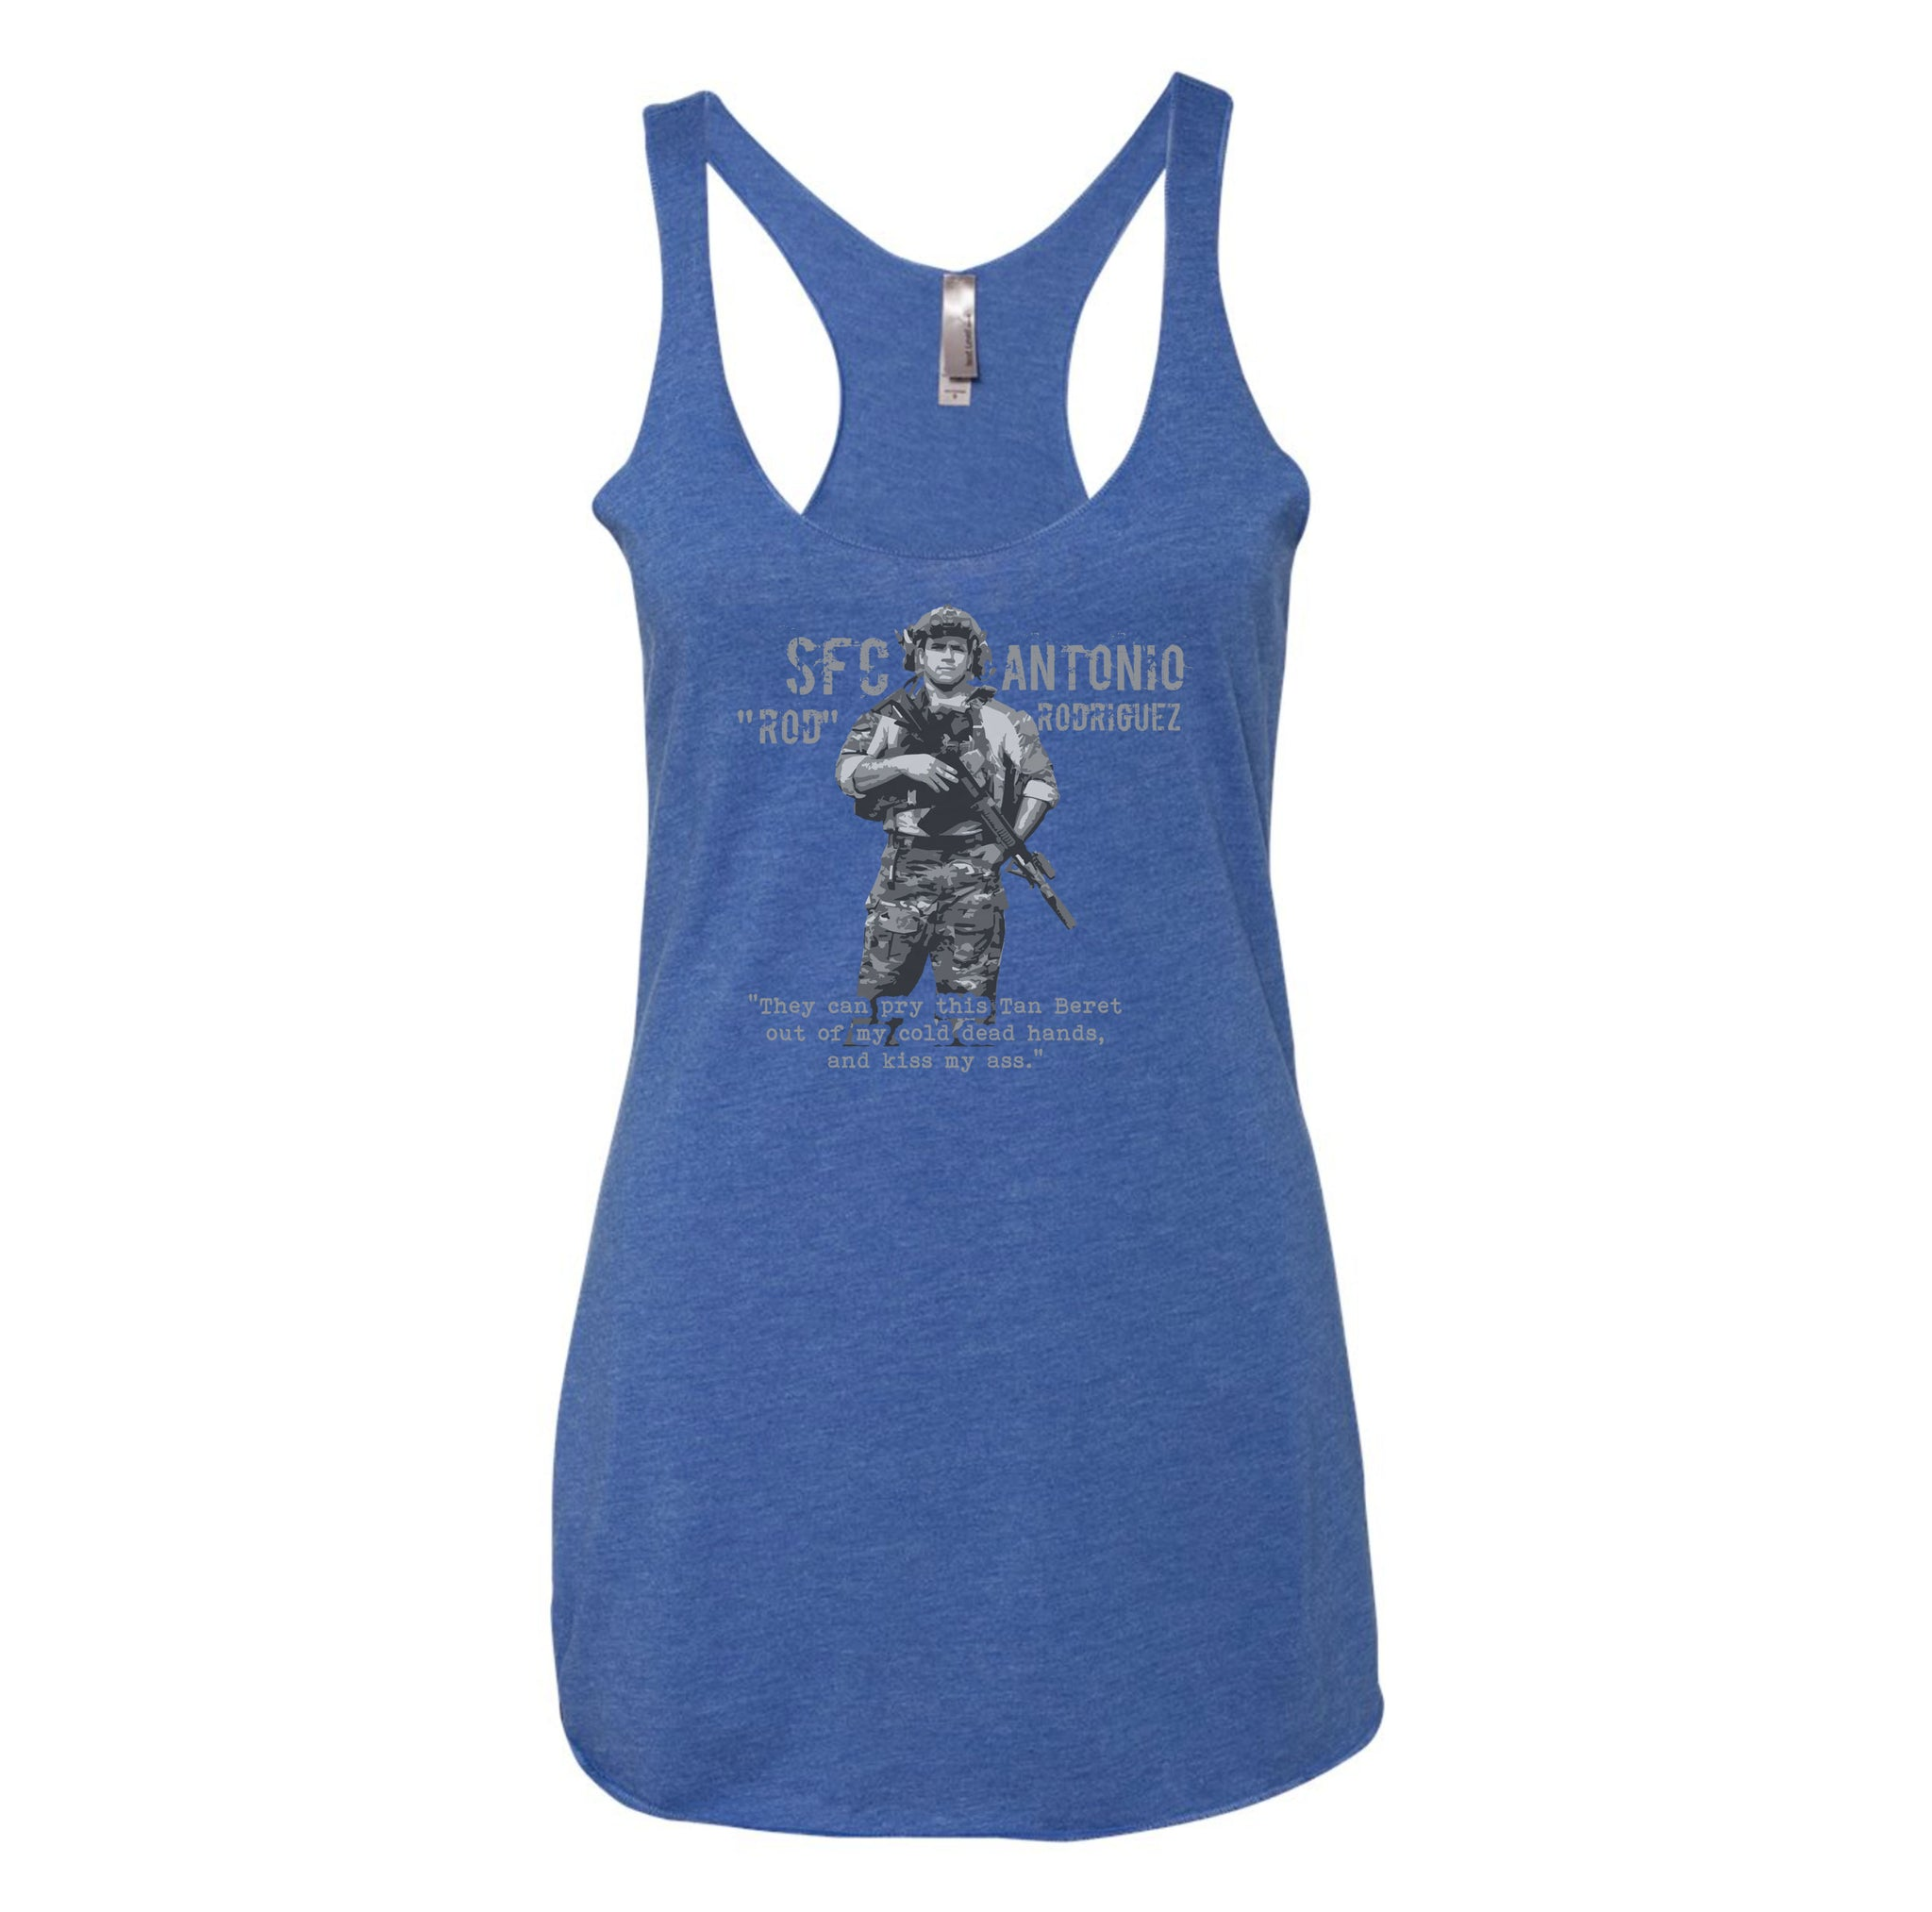 Rod Rodriguez Ladies Tank